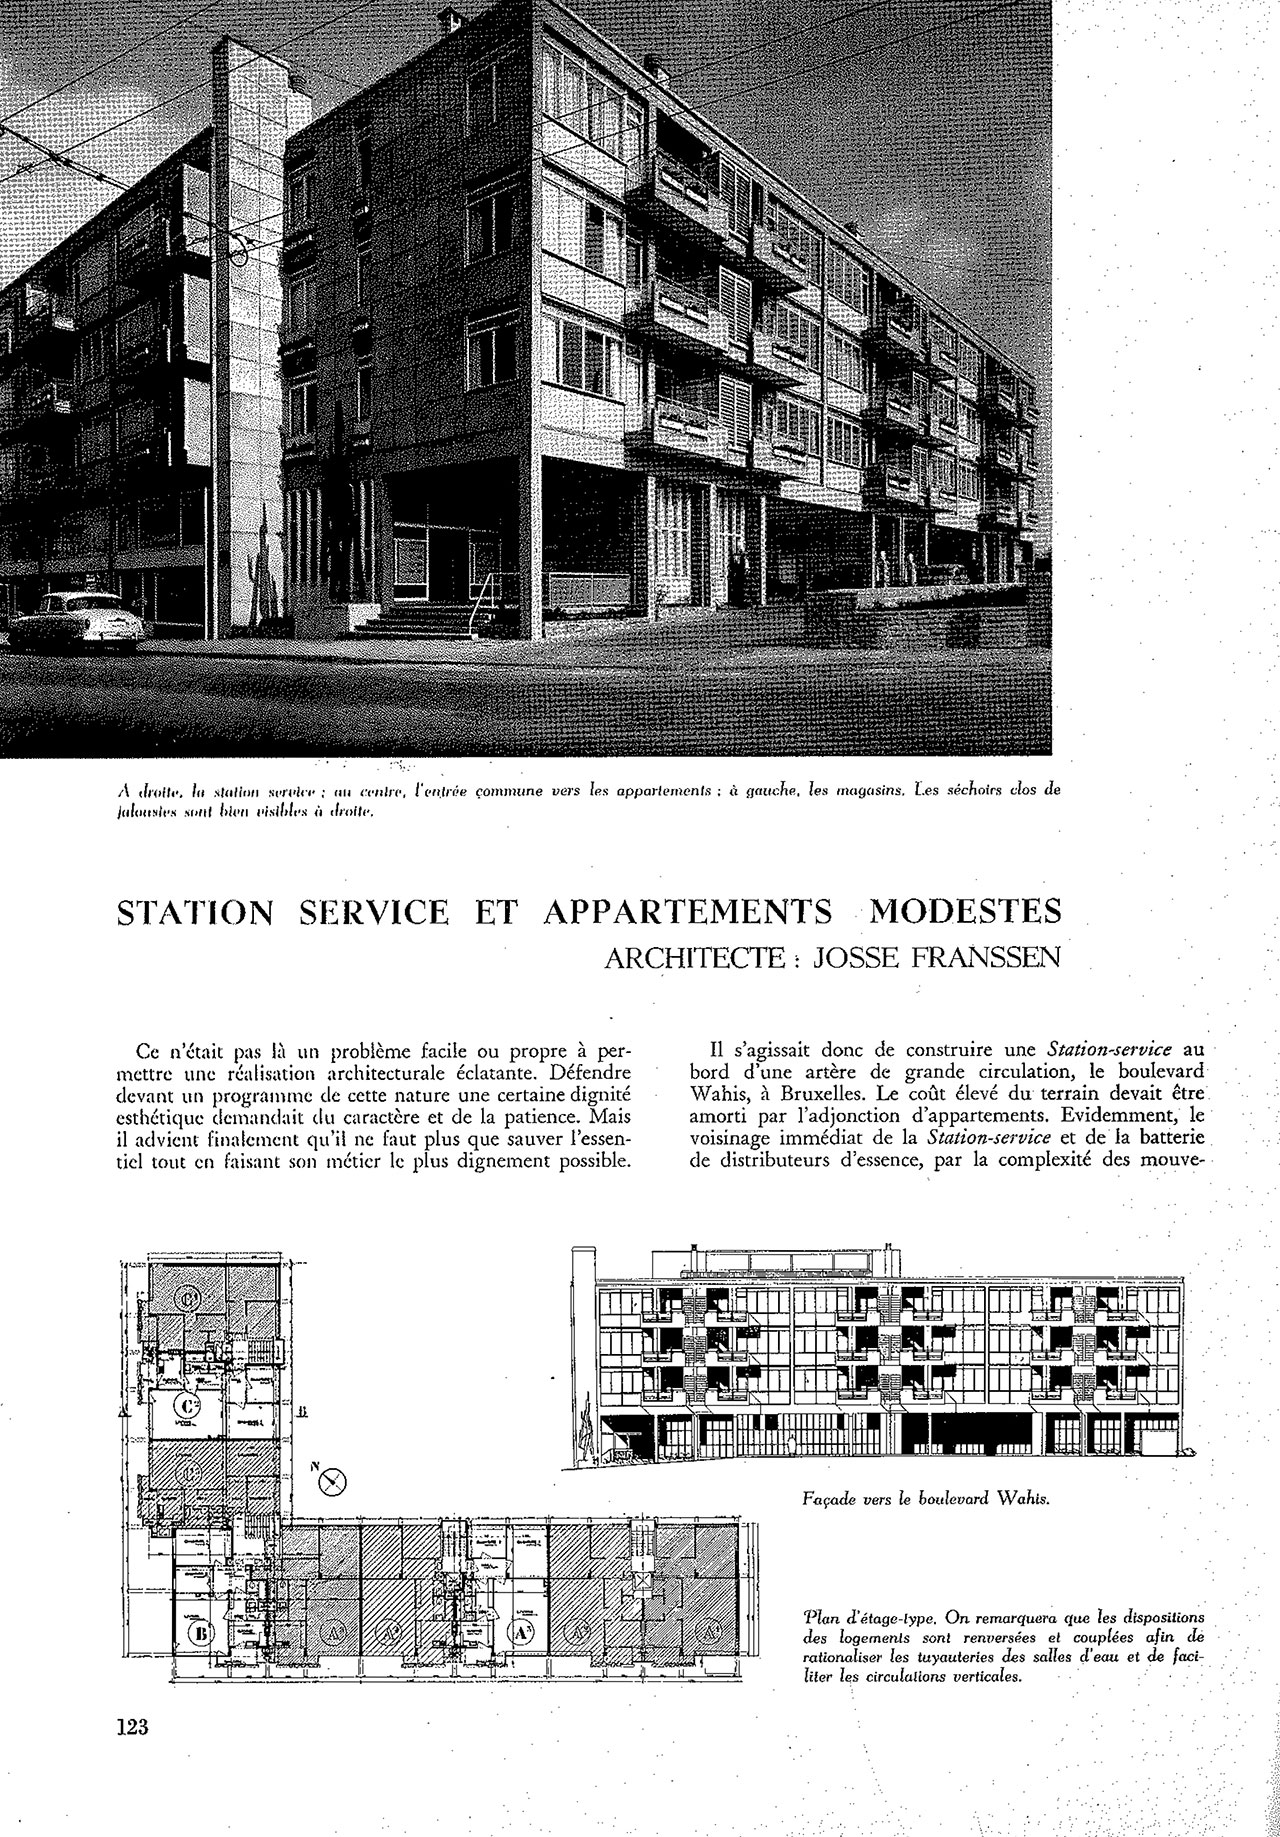 Station service et appartements modestes